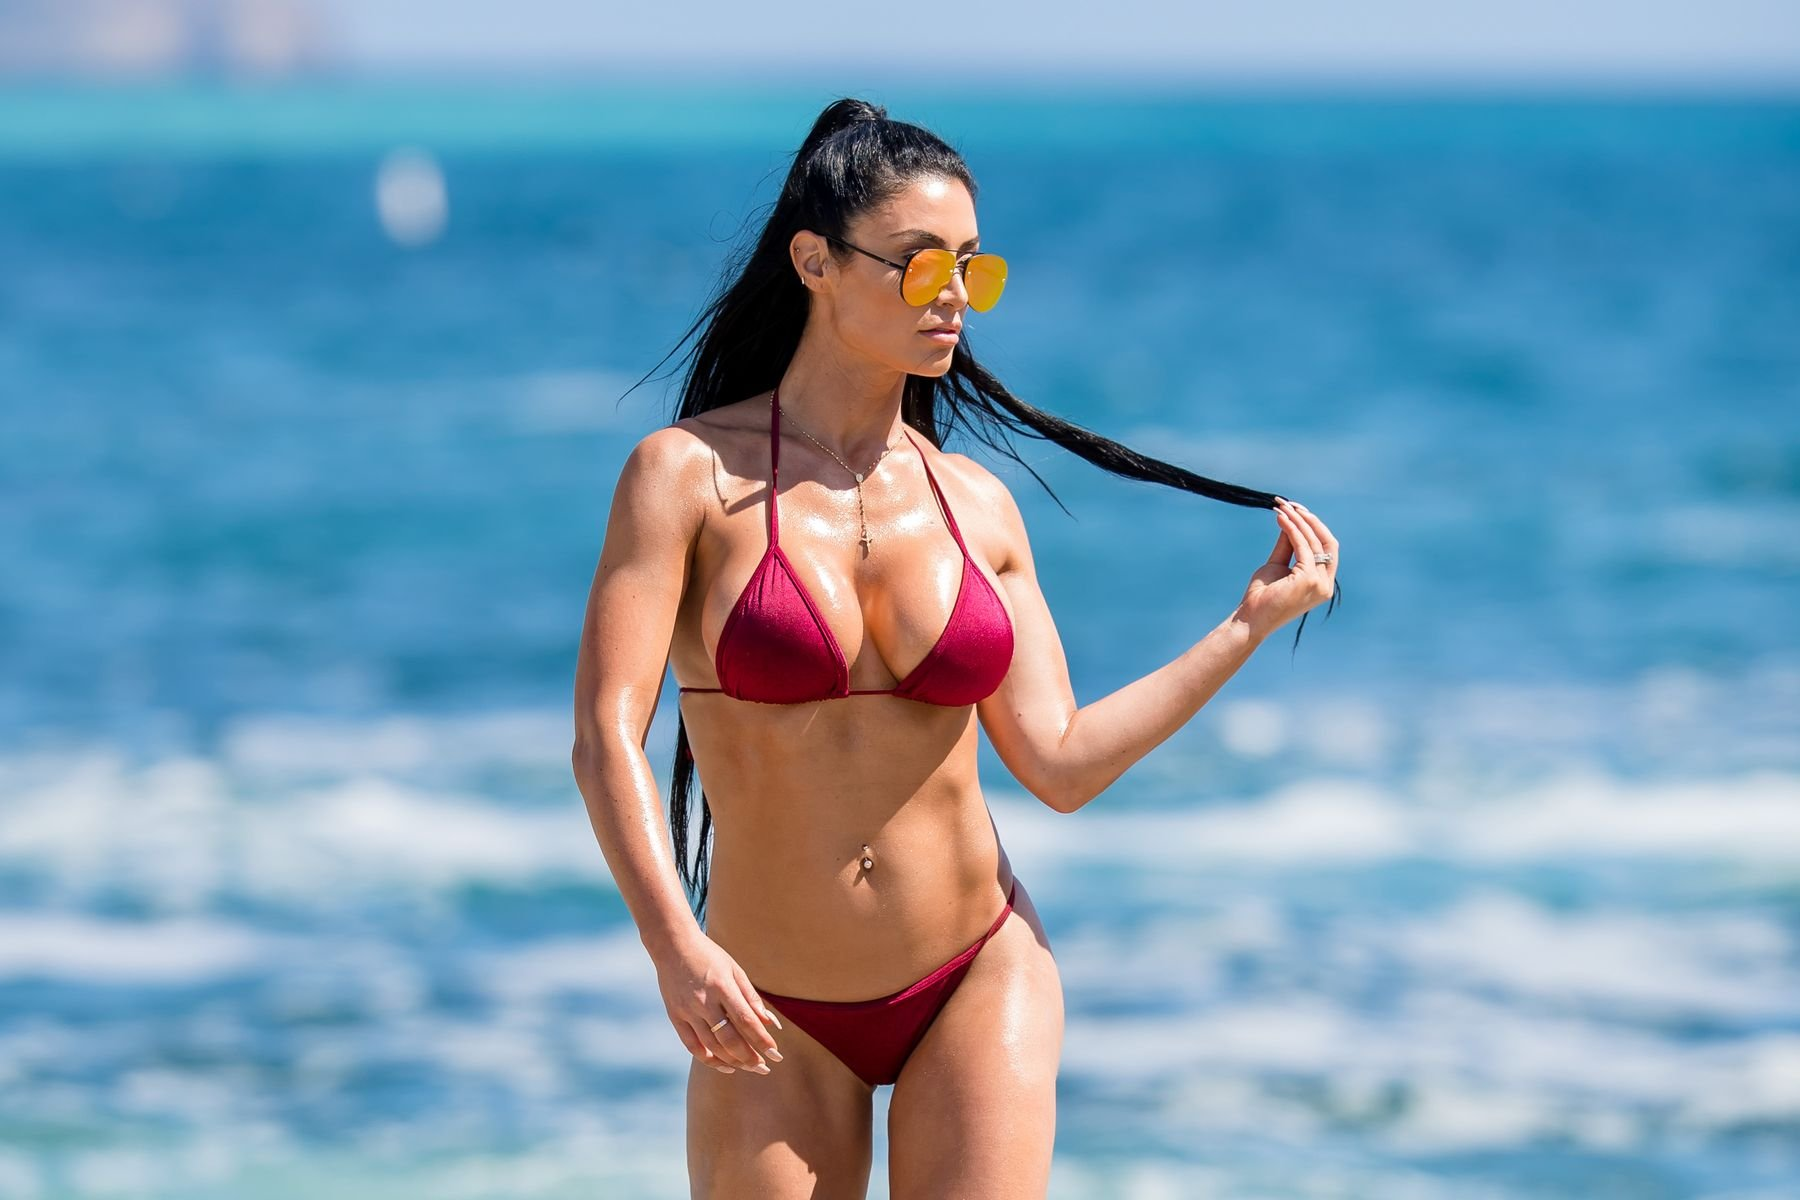 Eva marie bikini shoot behind the scenes